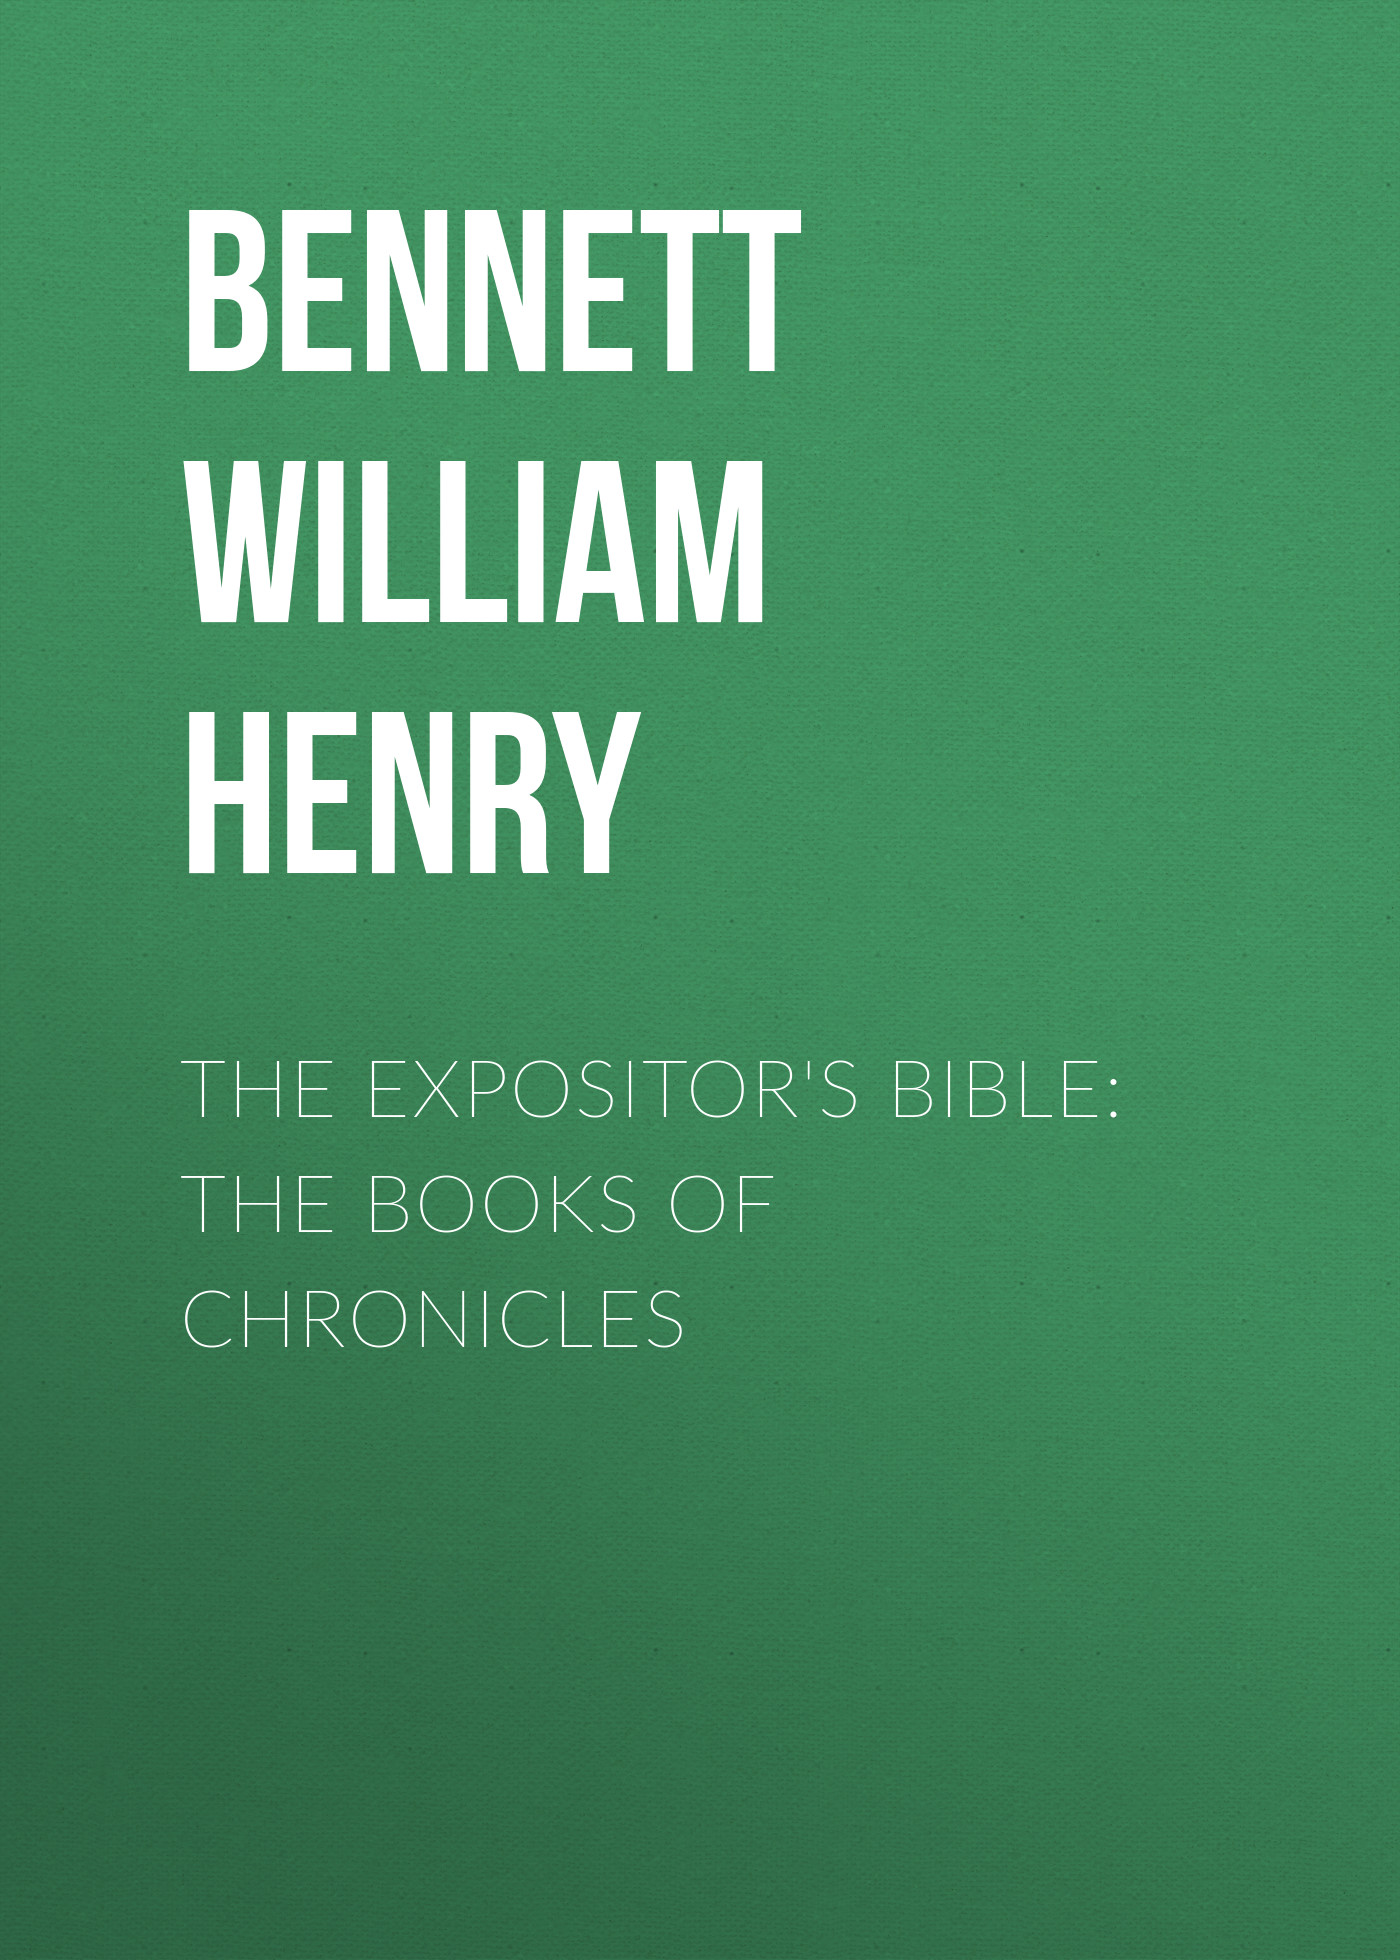 Bennett William Henry The Expositor's Bible: The Books of Chronicles frank henry gaines bible course